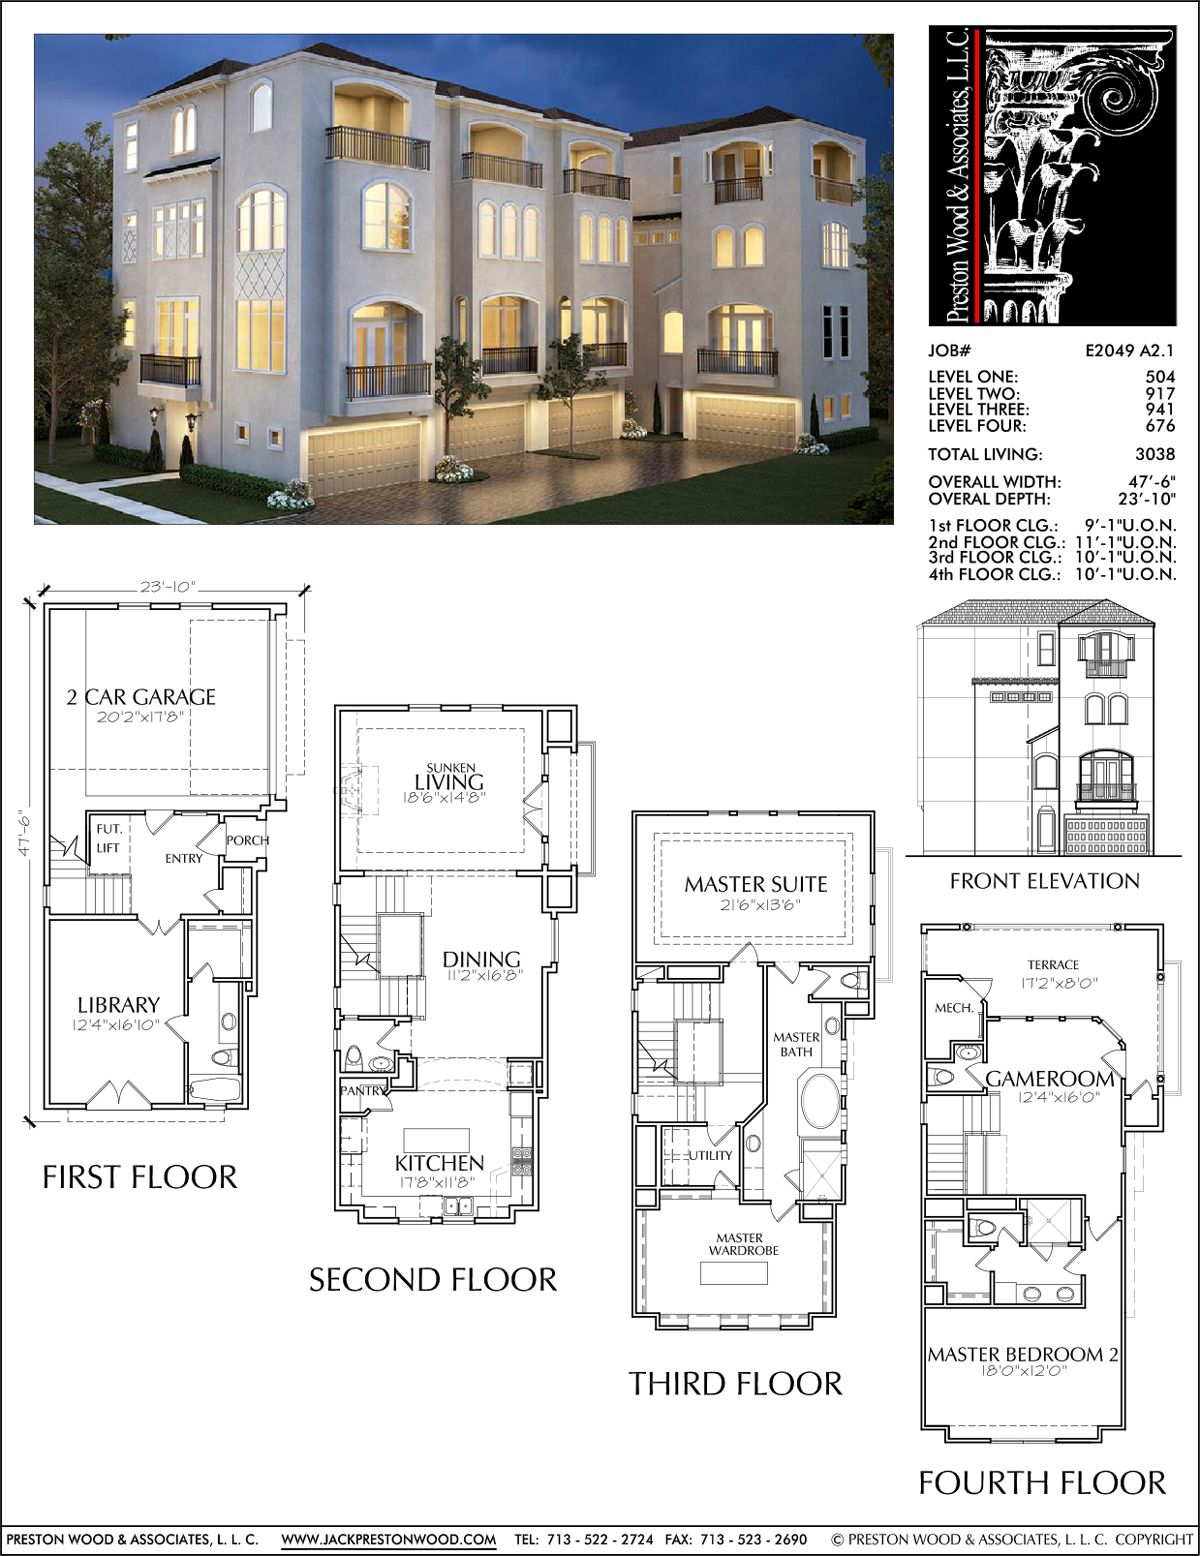 Townhouse plan e2049 a2 1 r c h pinterest for Townhouse floor plans